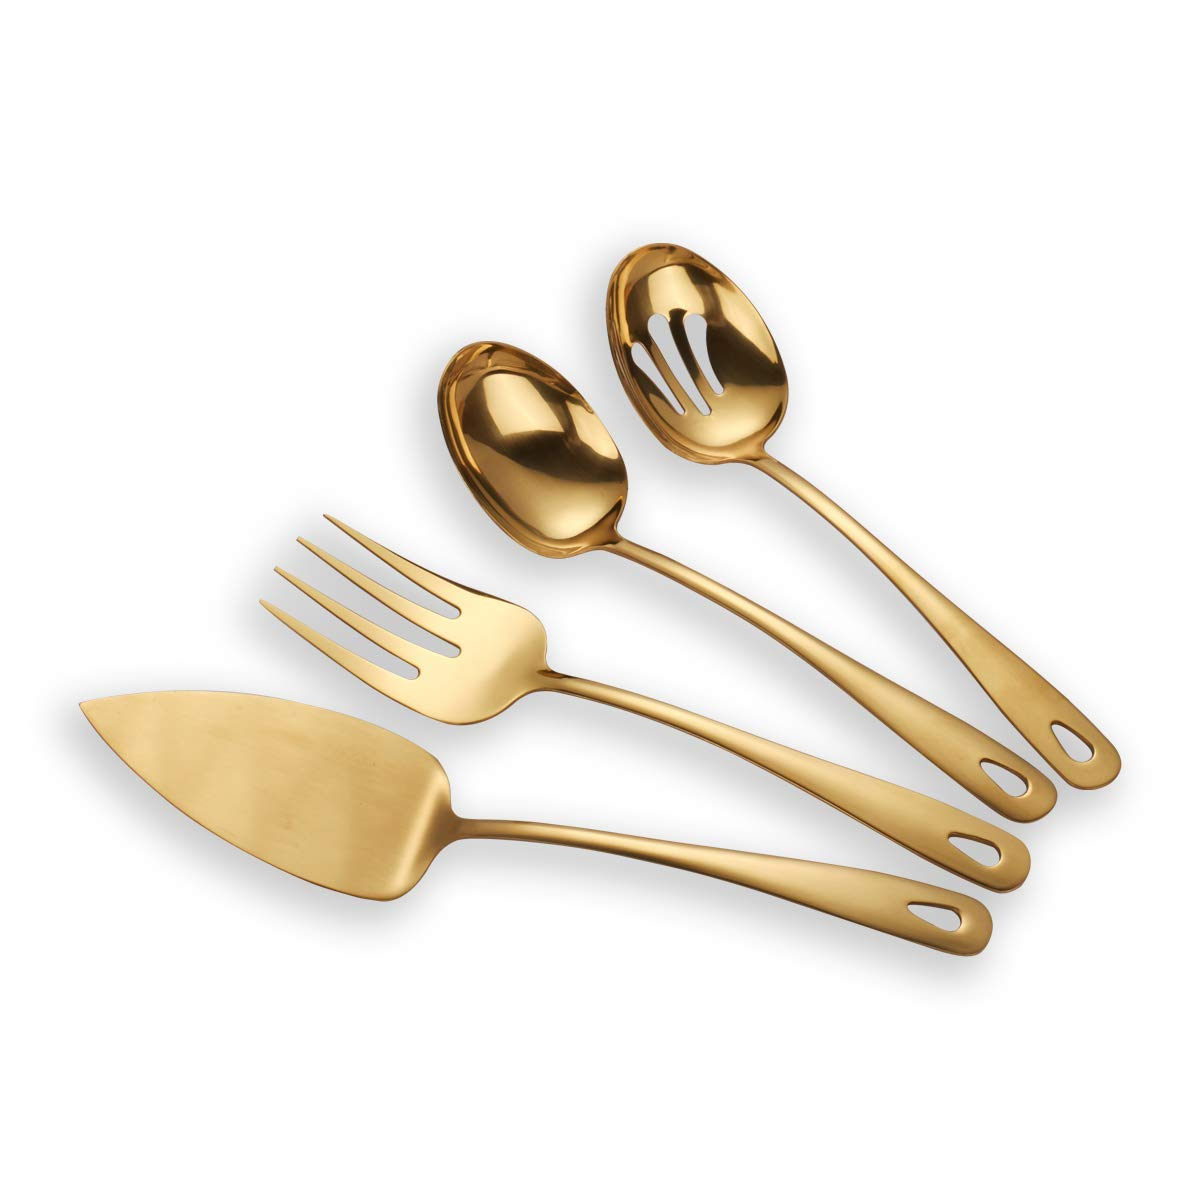 Berglander Stainless Steel Golden Titanium Plated Flatware Serving Set 4 Pieces, Cake Server Cold Meat Fork Pierced Serving Spoon Serving Spoon, Golden Silverware Set (shiny, Golden) by Berglander